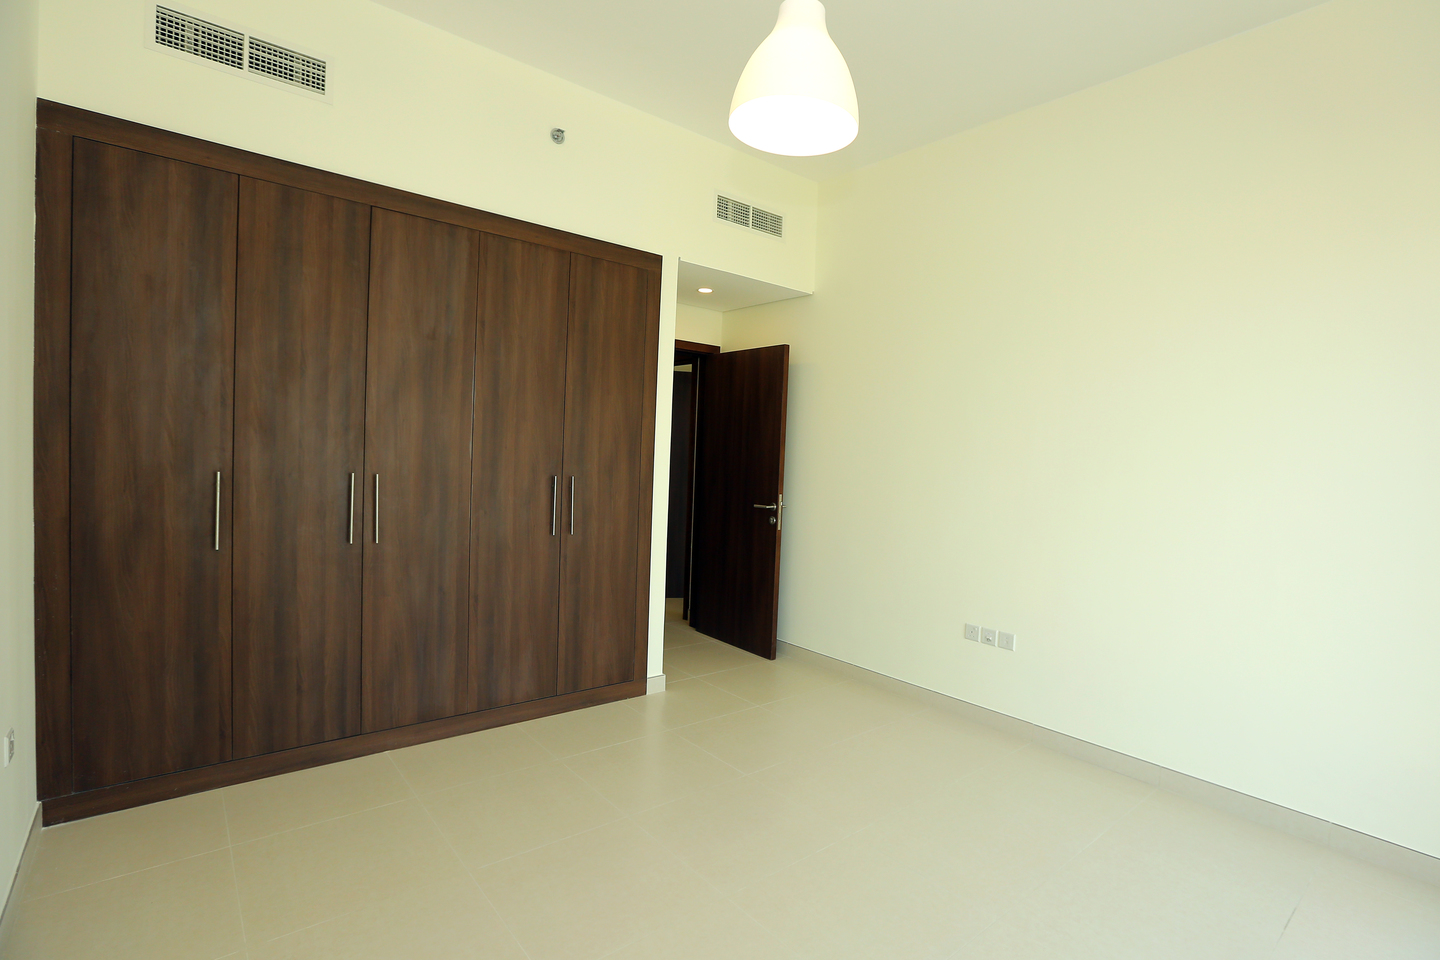 wasl nad tower bedroom closet